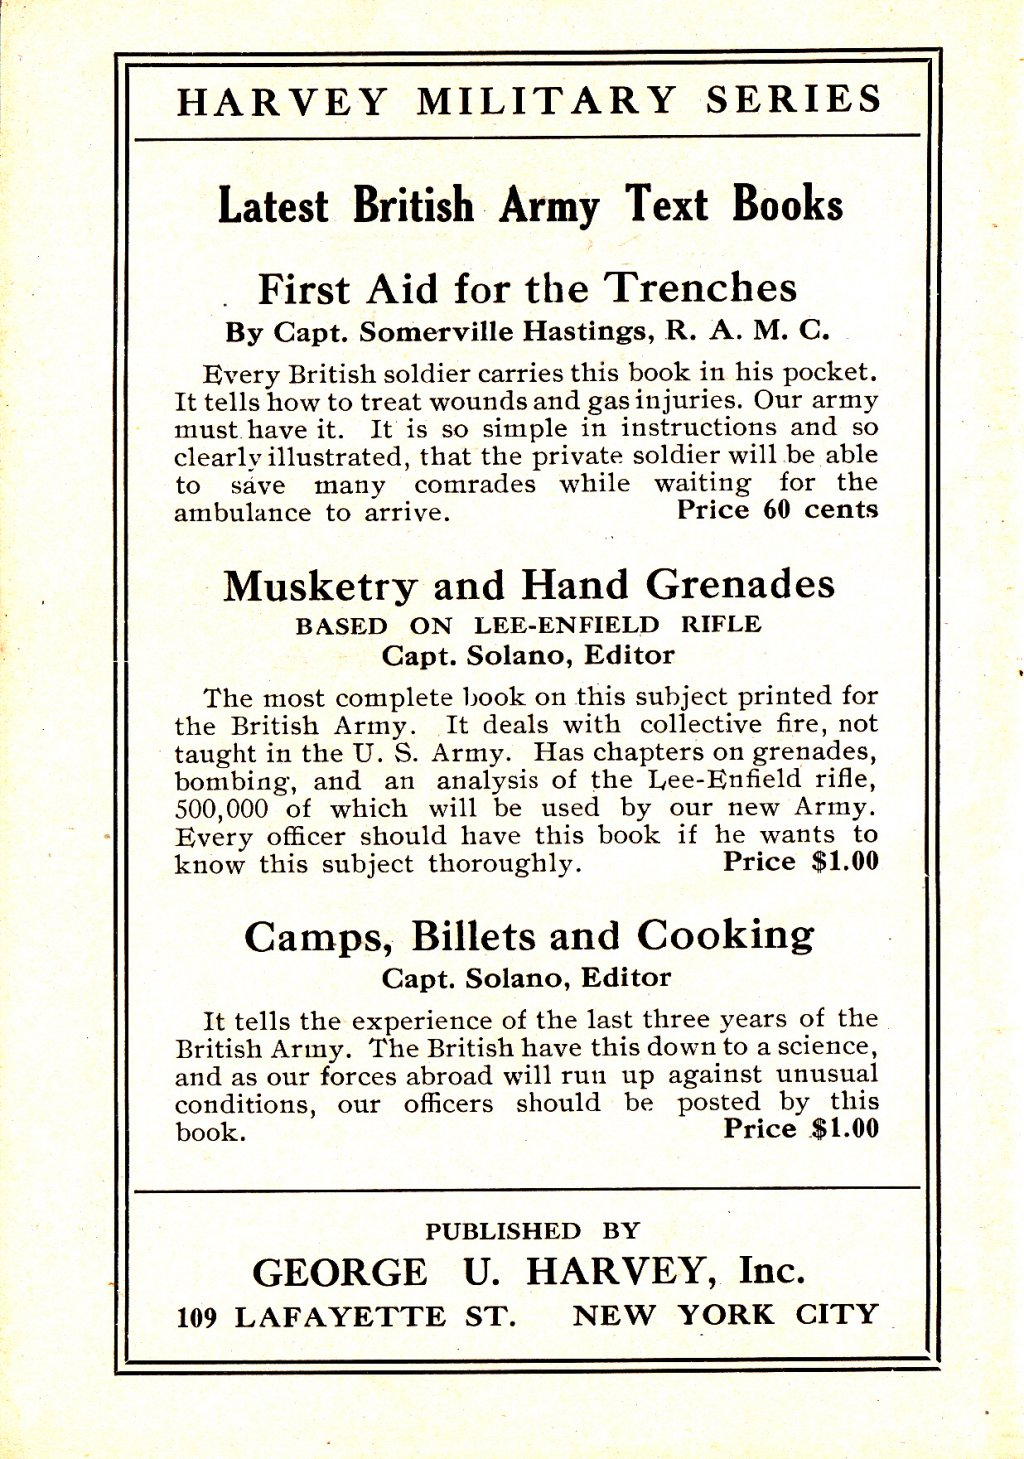 314th Infantry Regiment - Infantry Soldiers Handbook - Waldron - Page 254